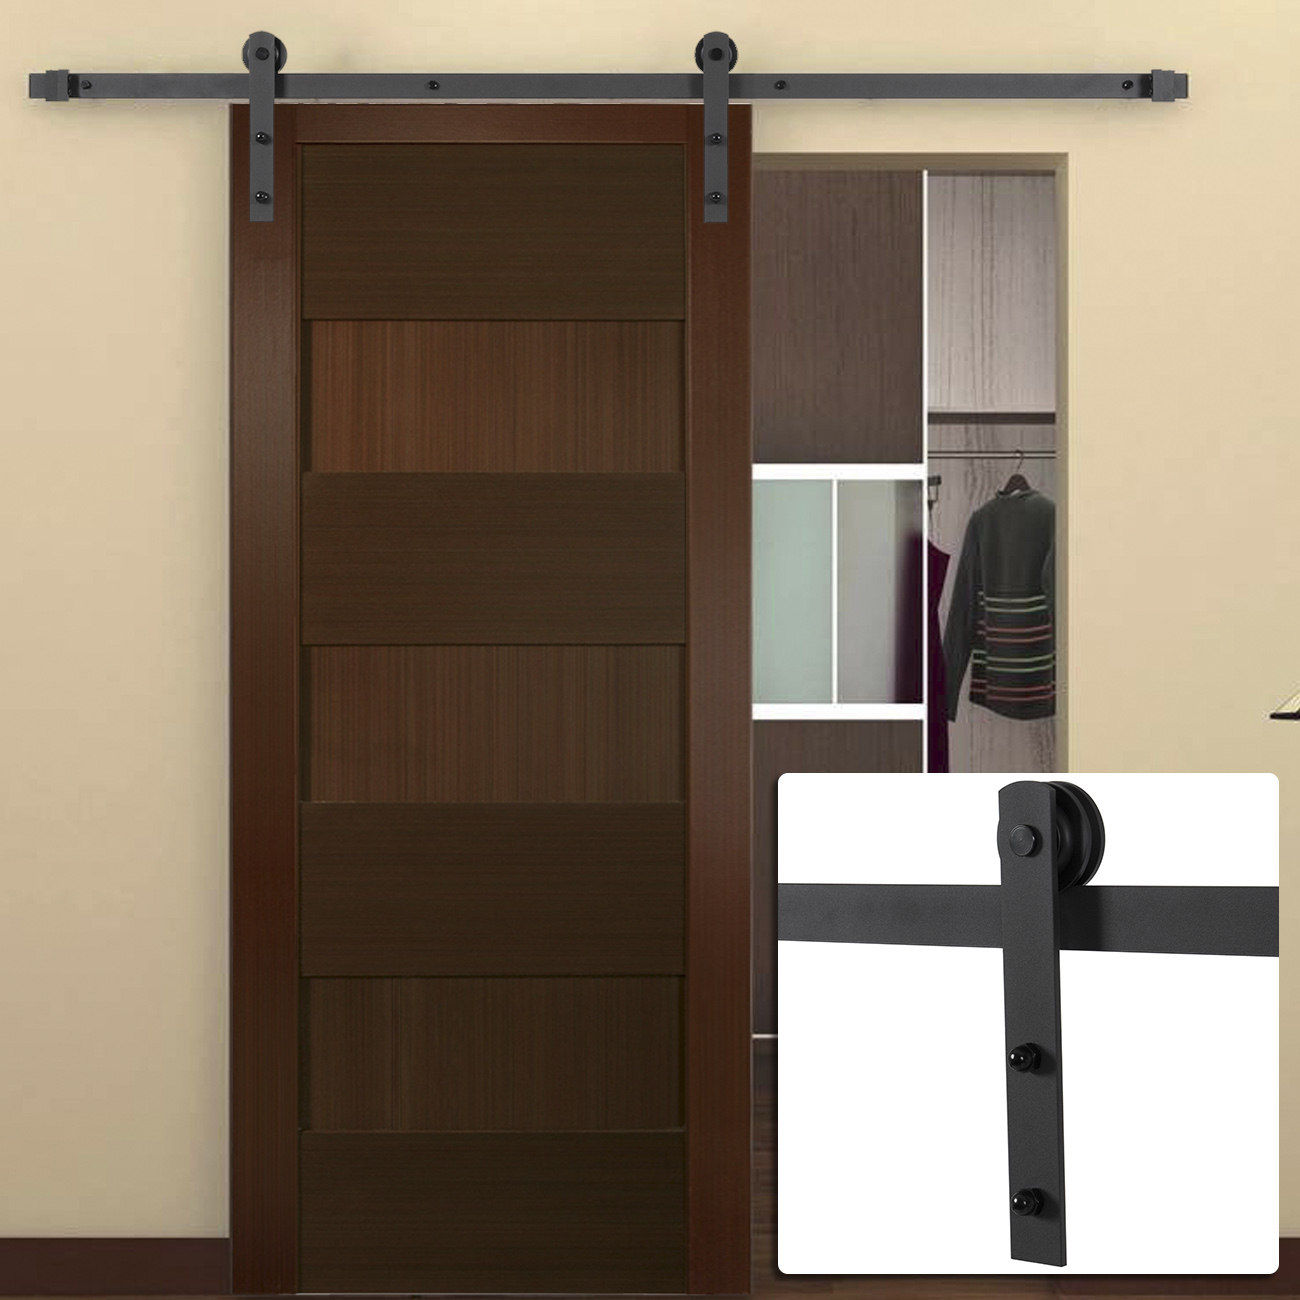 6ft antique country style steel sliding barn door closet. Black Bedroom Furniture Sets. Home Design Ideas